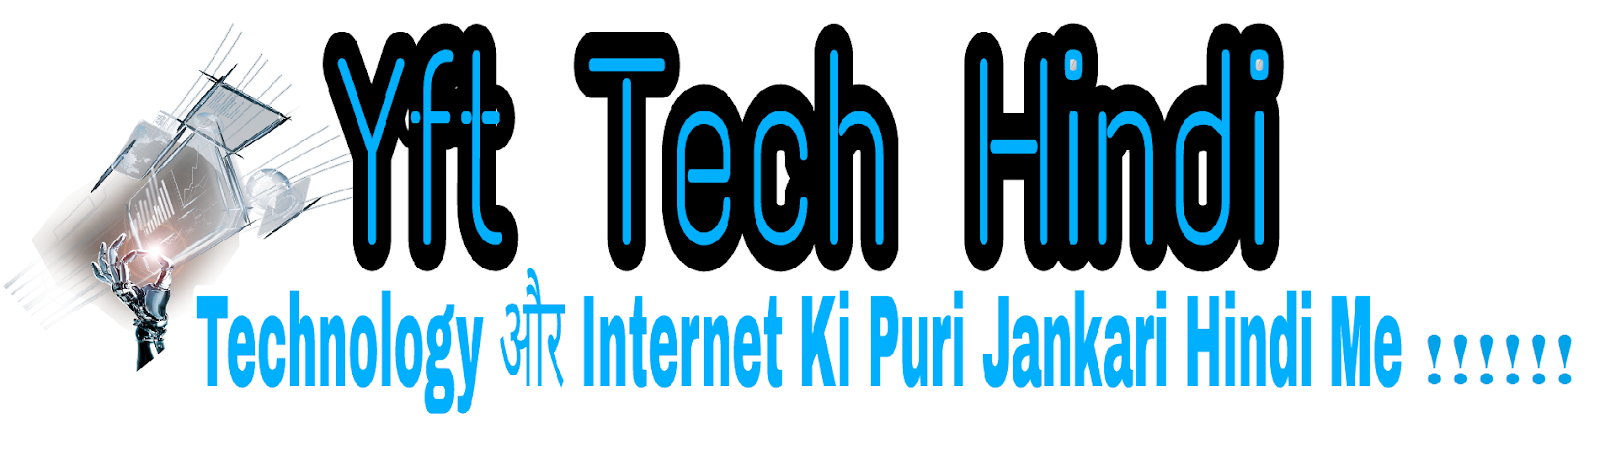 YFT Tech Hindi - Blogging, Web Development aur Technology ki puri jankari